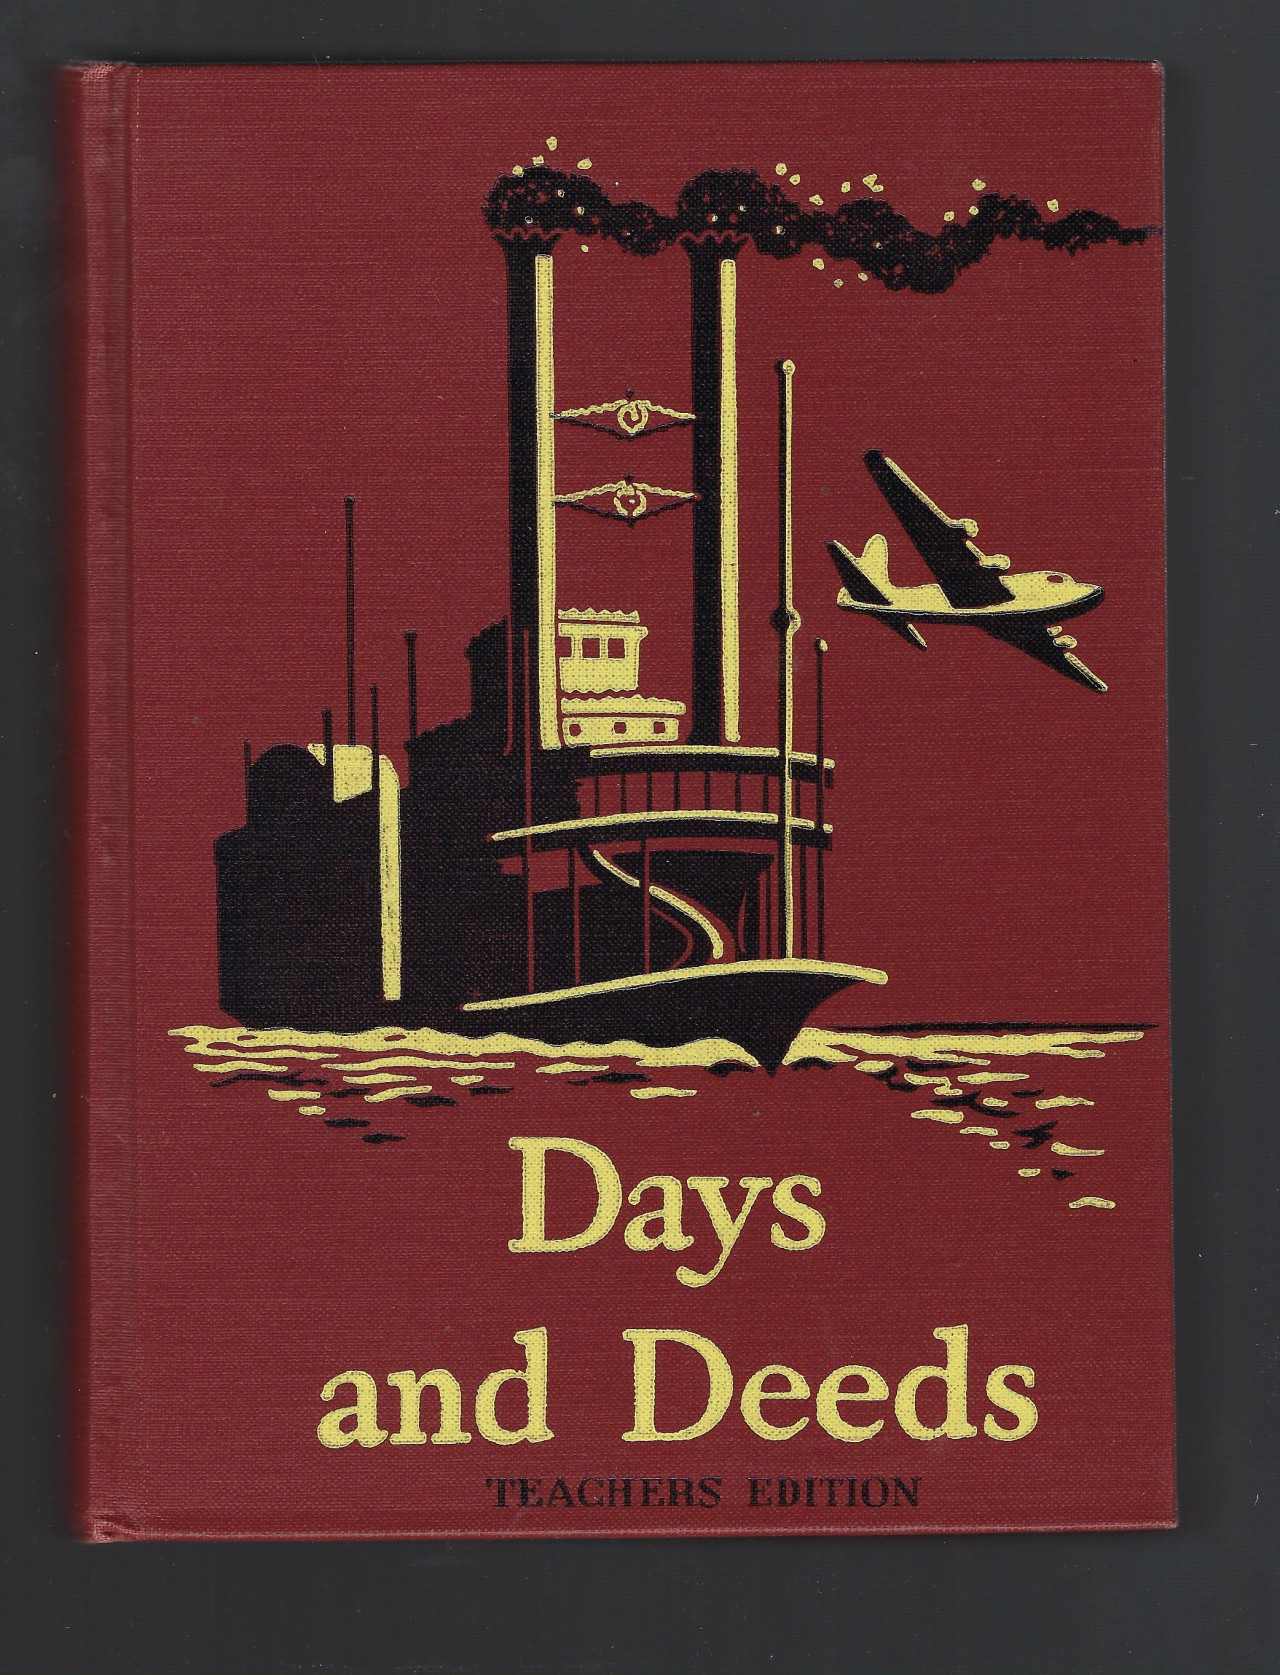 Days and Deeds Basic Readers 5 Teachers Edition Dick and Jane Series, William S. Gray, etc.